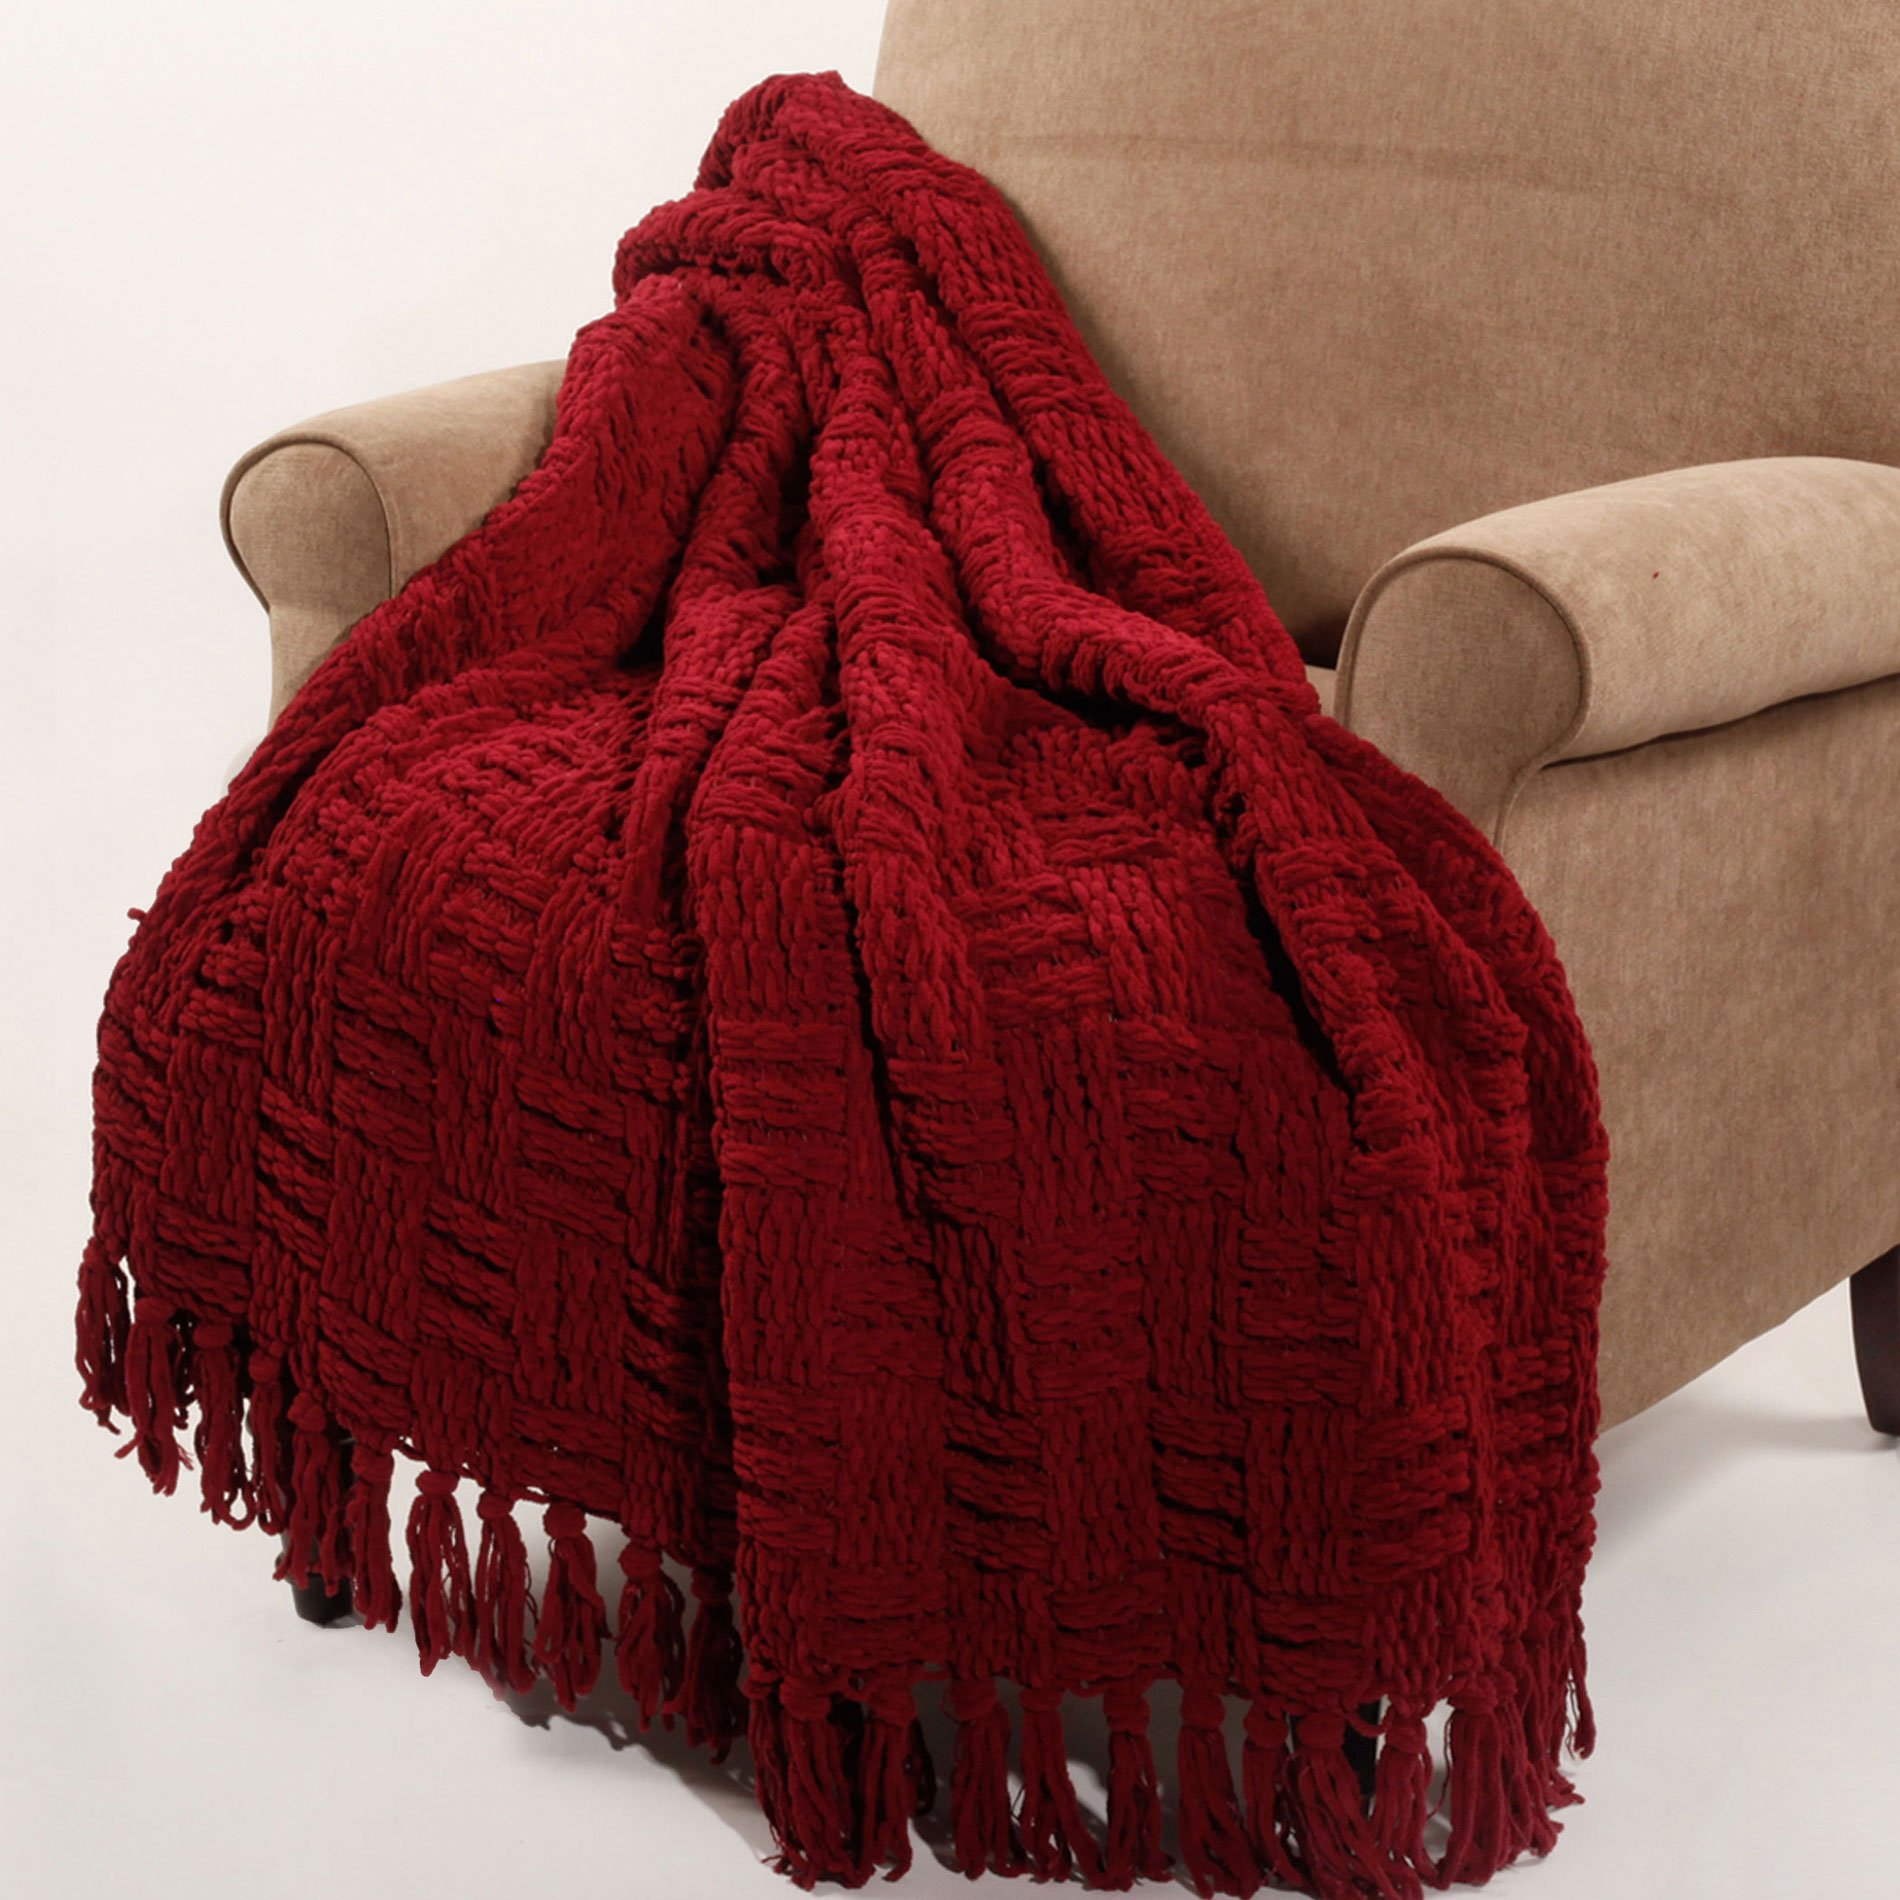 Home Soft Things BOON Cable Knitted Throw Couch Cover Blanket, 50'' x 60'', Burgundy